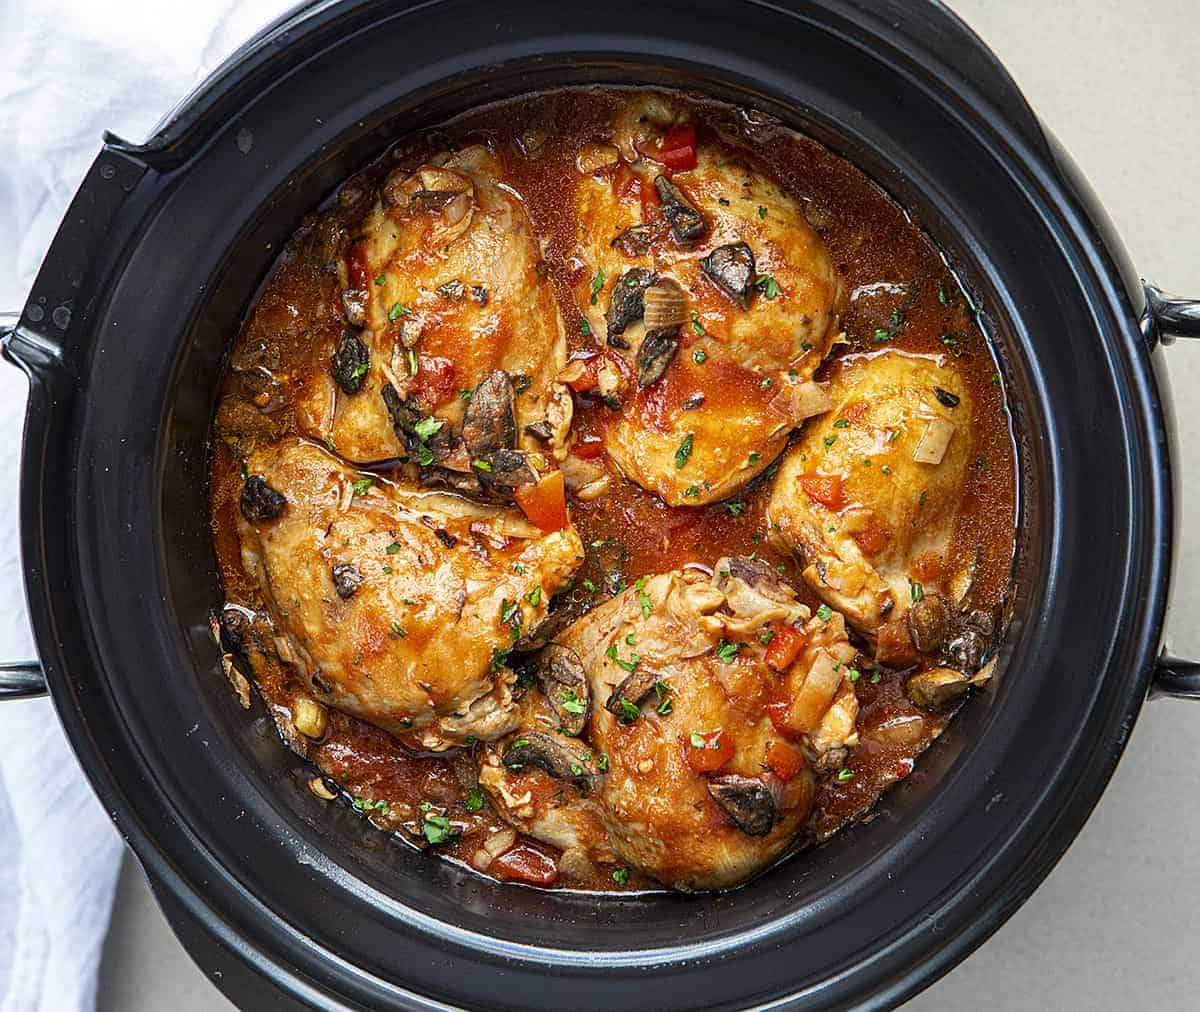 Overhead View of Slow Cooker Chicken Cacciatore in a Black Slow Cooker